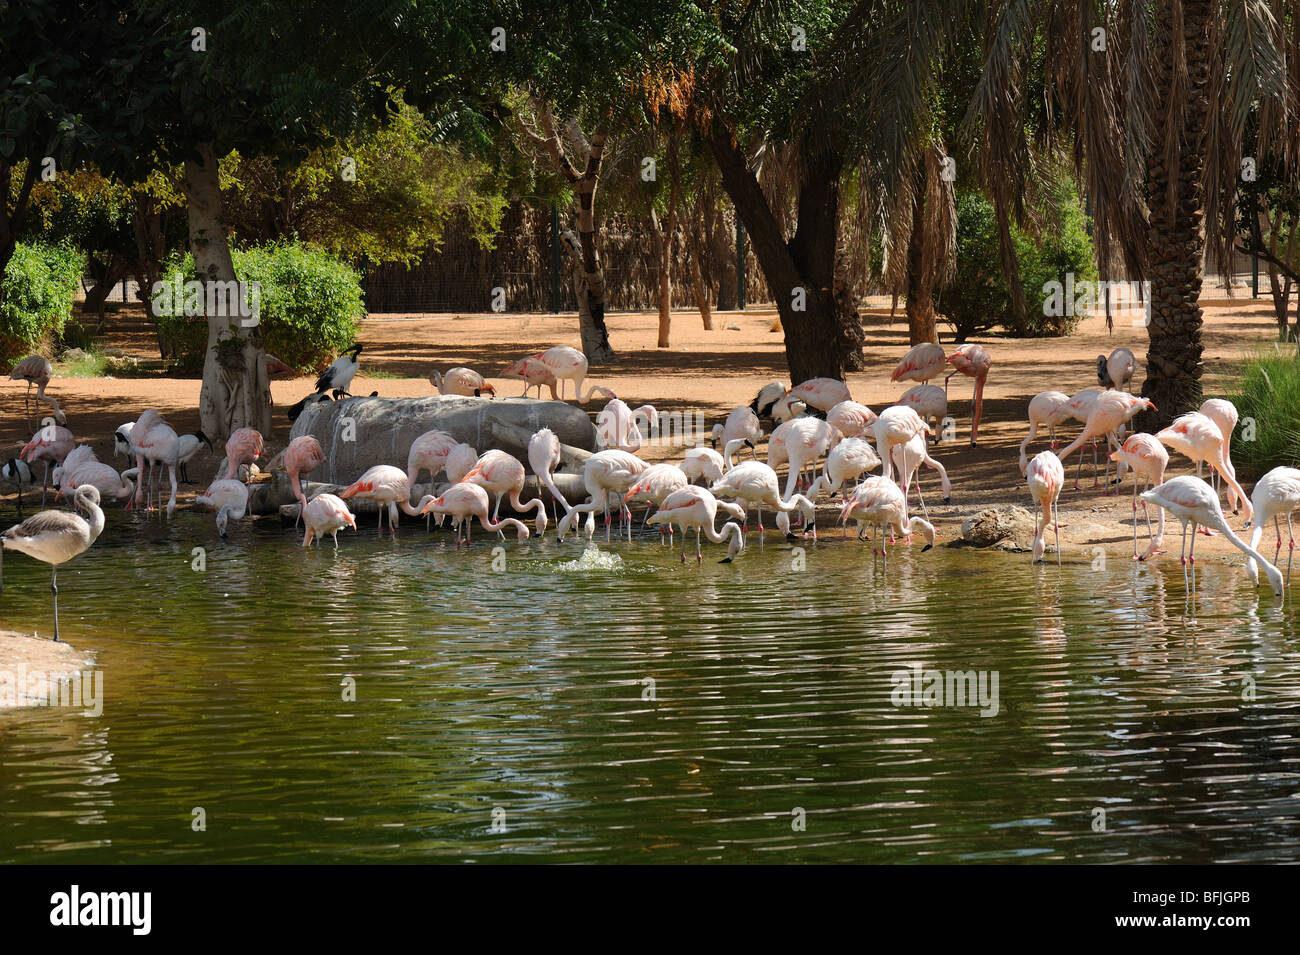 Greater Flamingoes (Phoenicopterus roseus) at the Al Ain Zoo, UAE - Stock Image